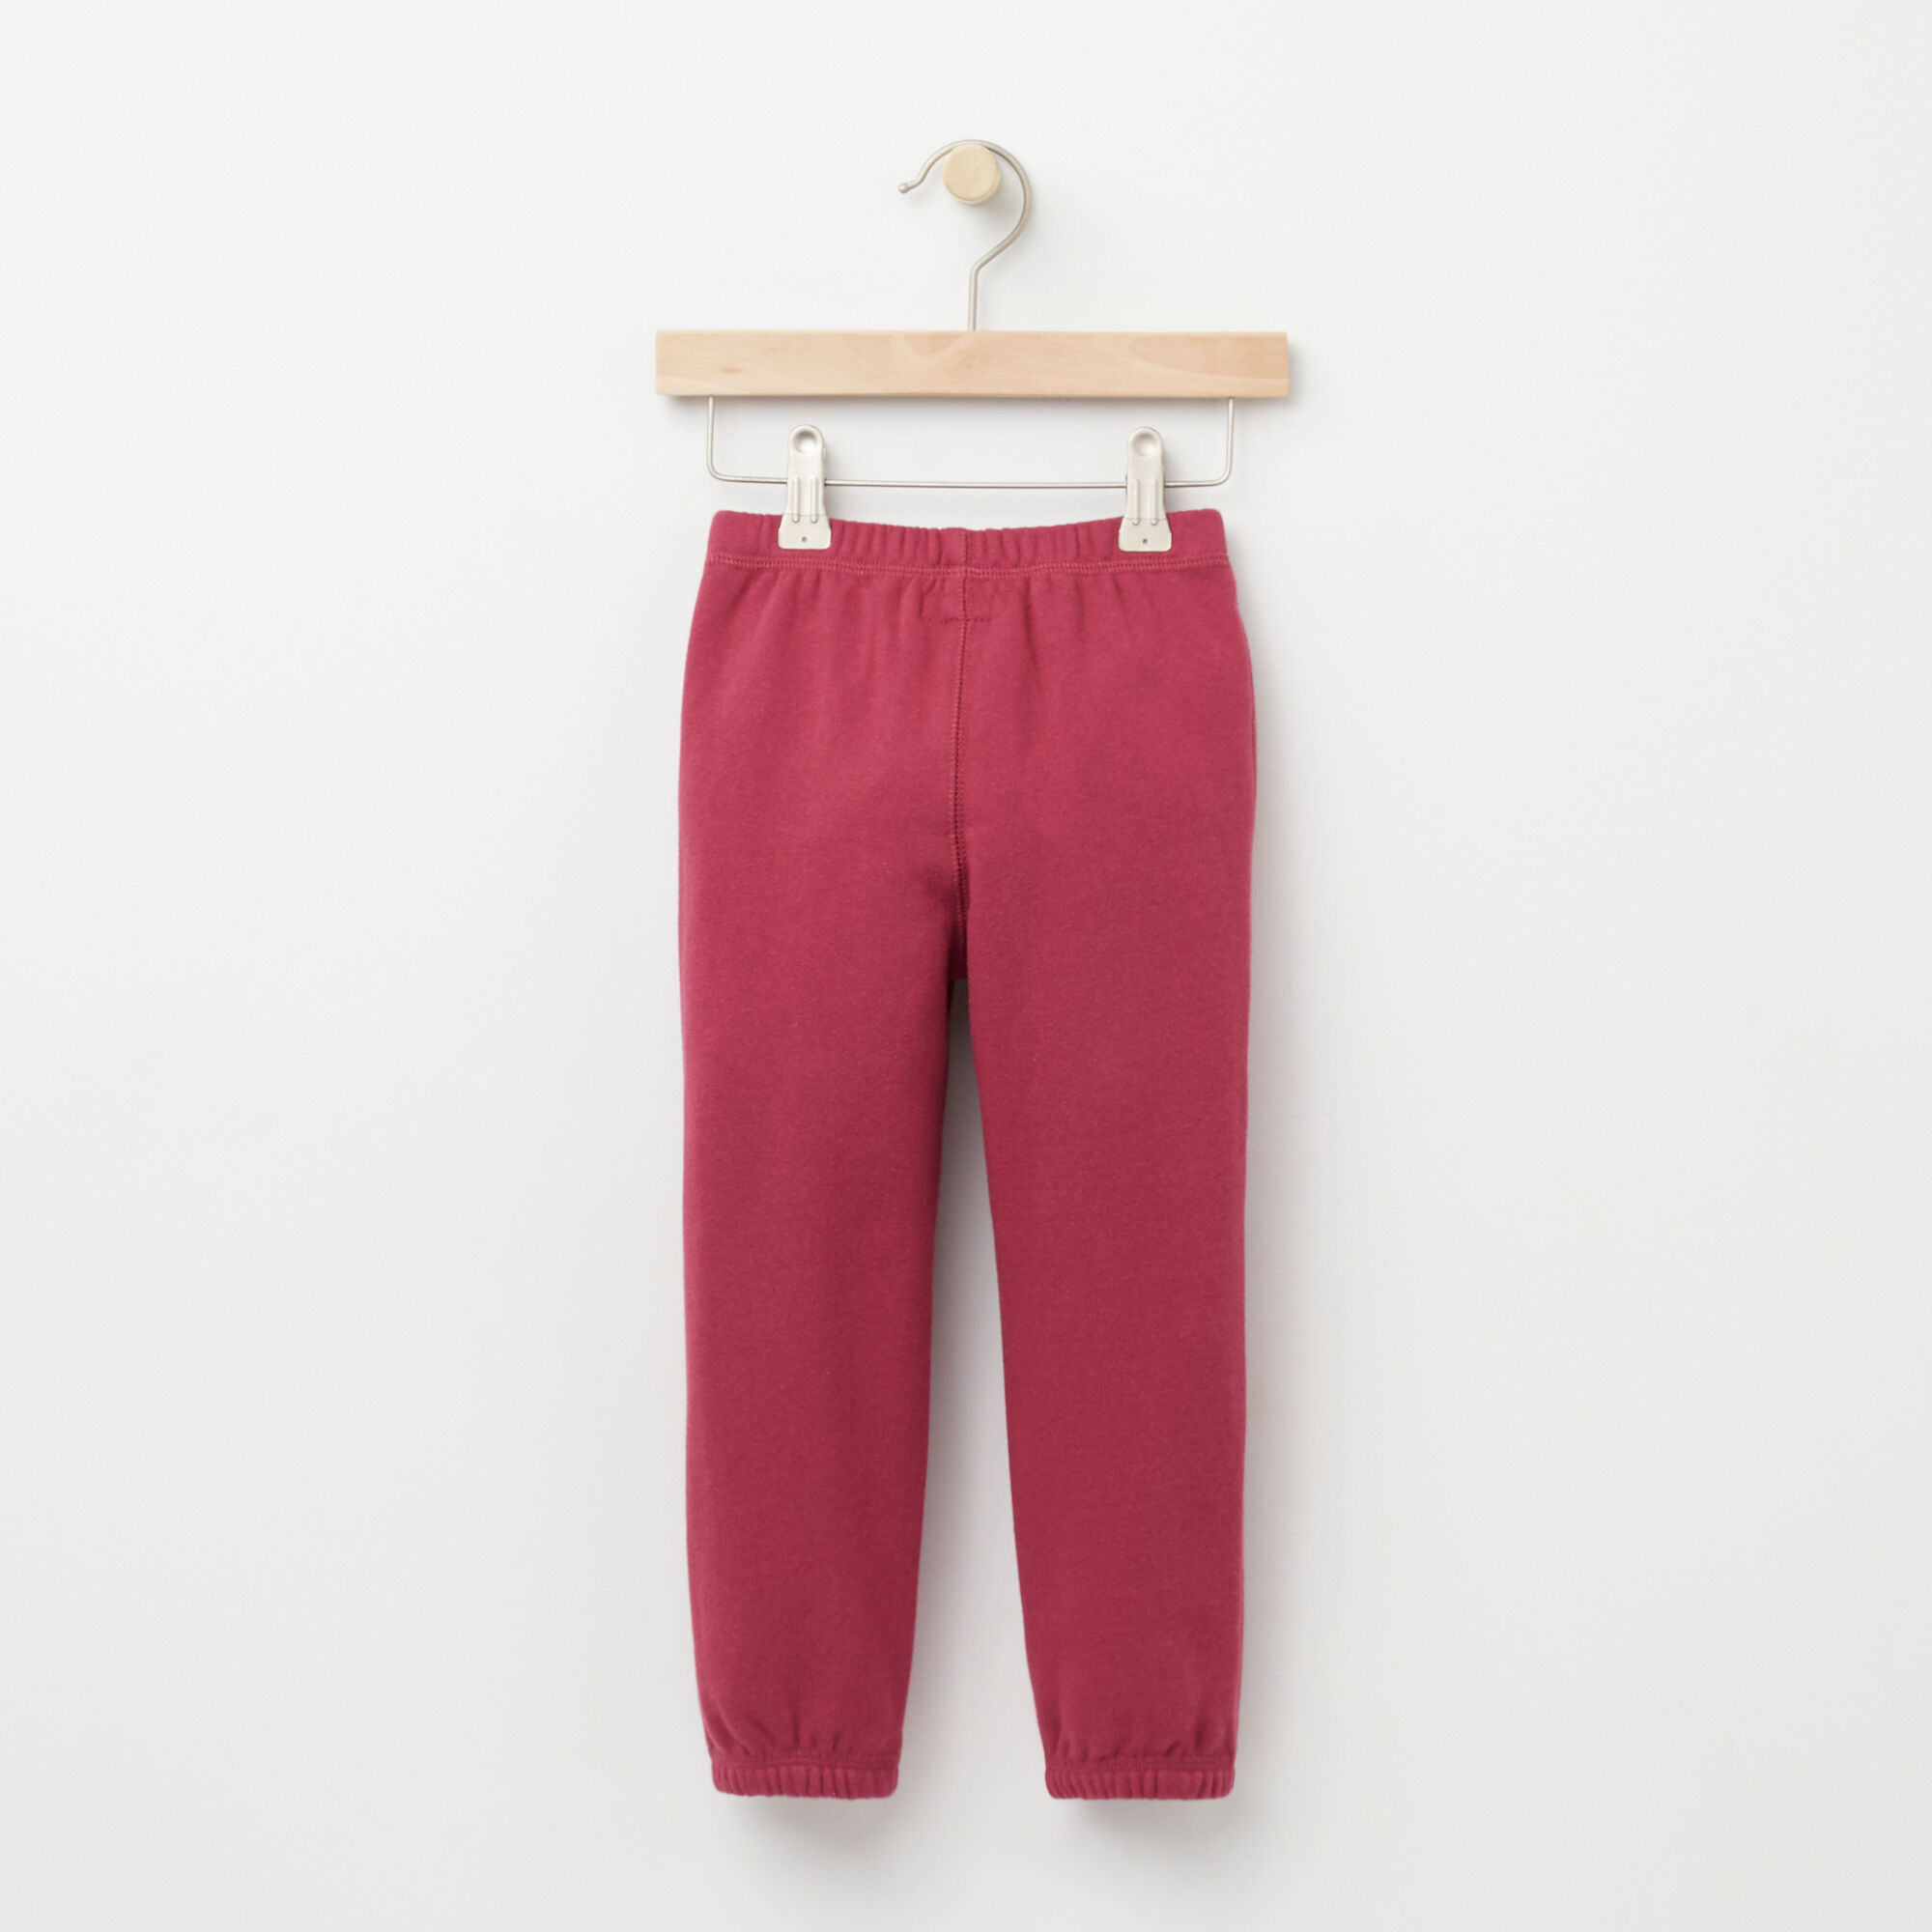 Tout-Petits Roots Re-issue Sweatpant